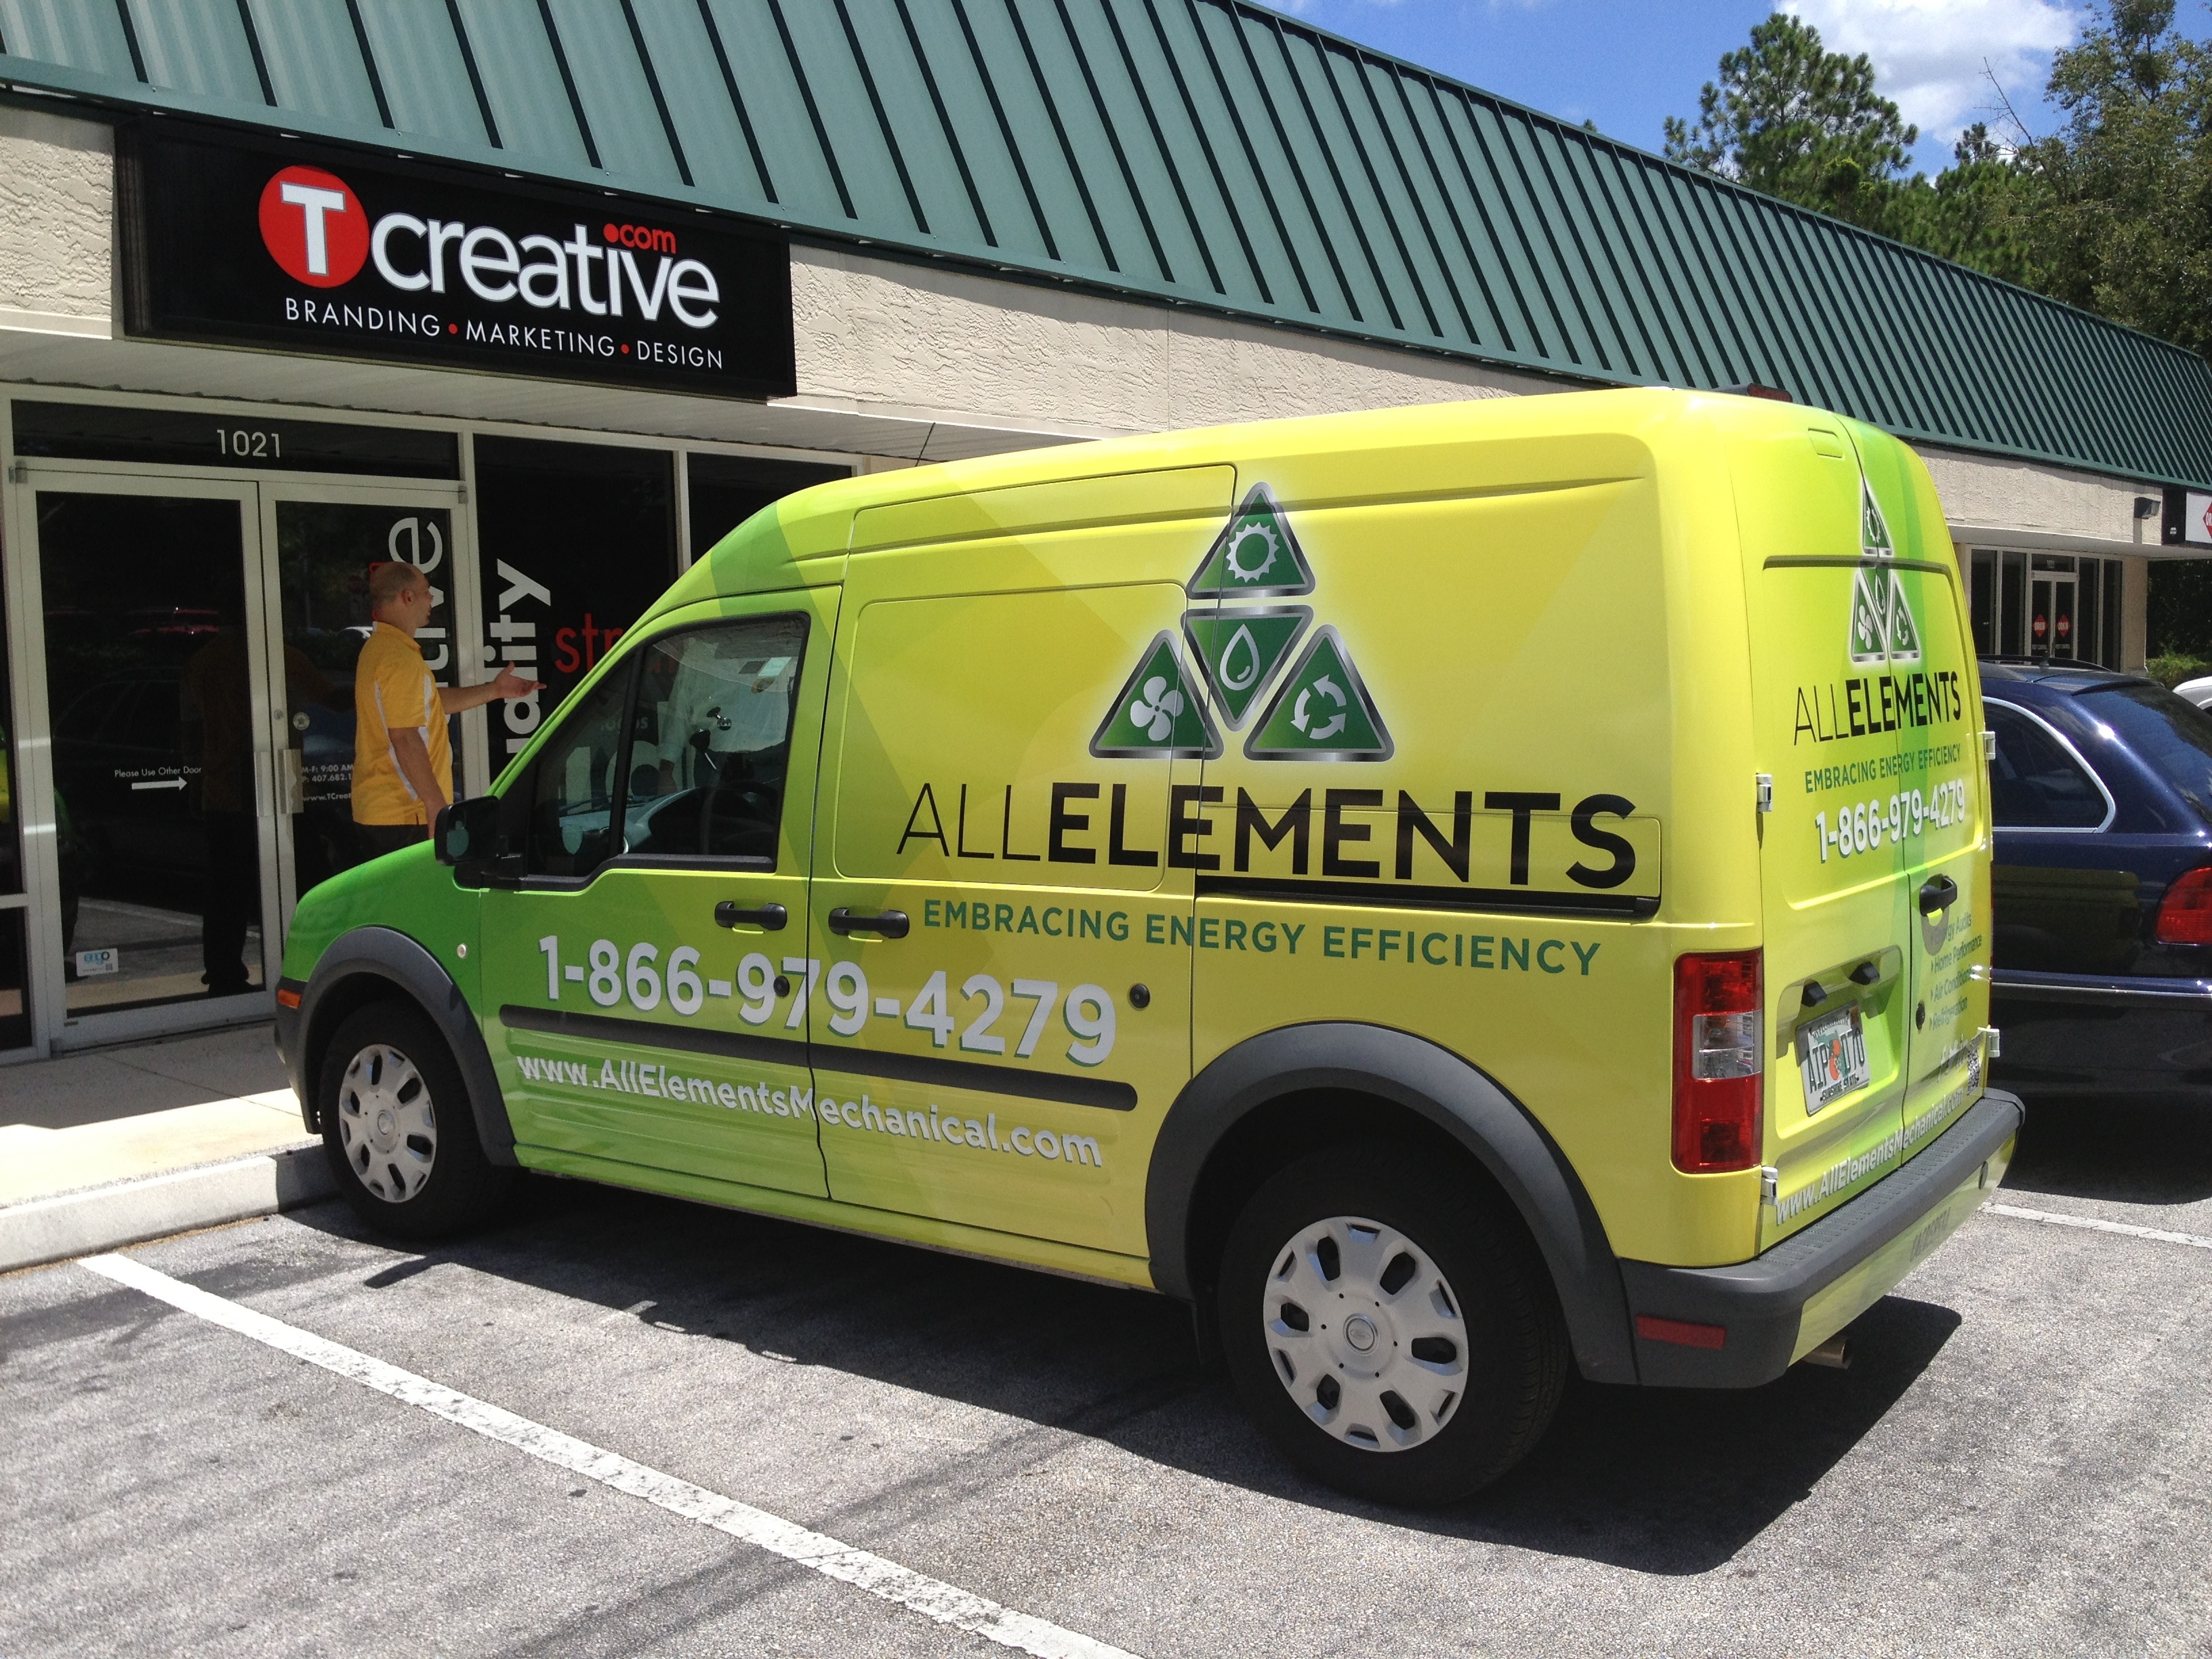 All Elements Van Wrap 2